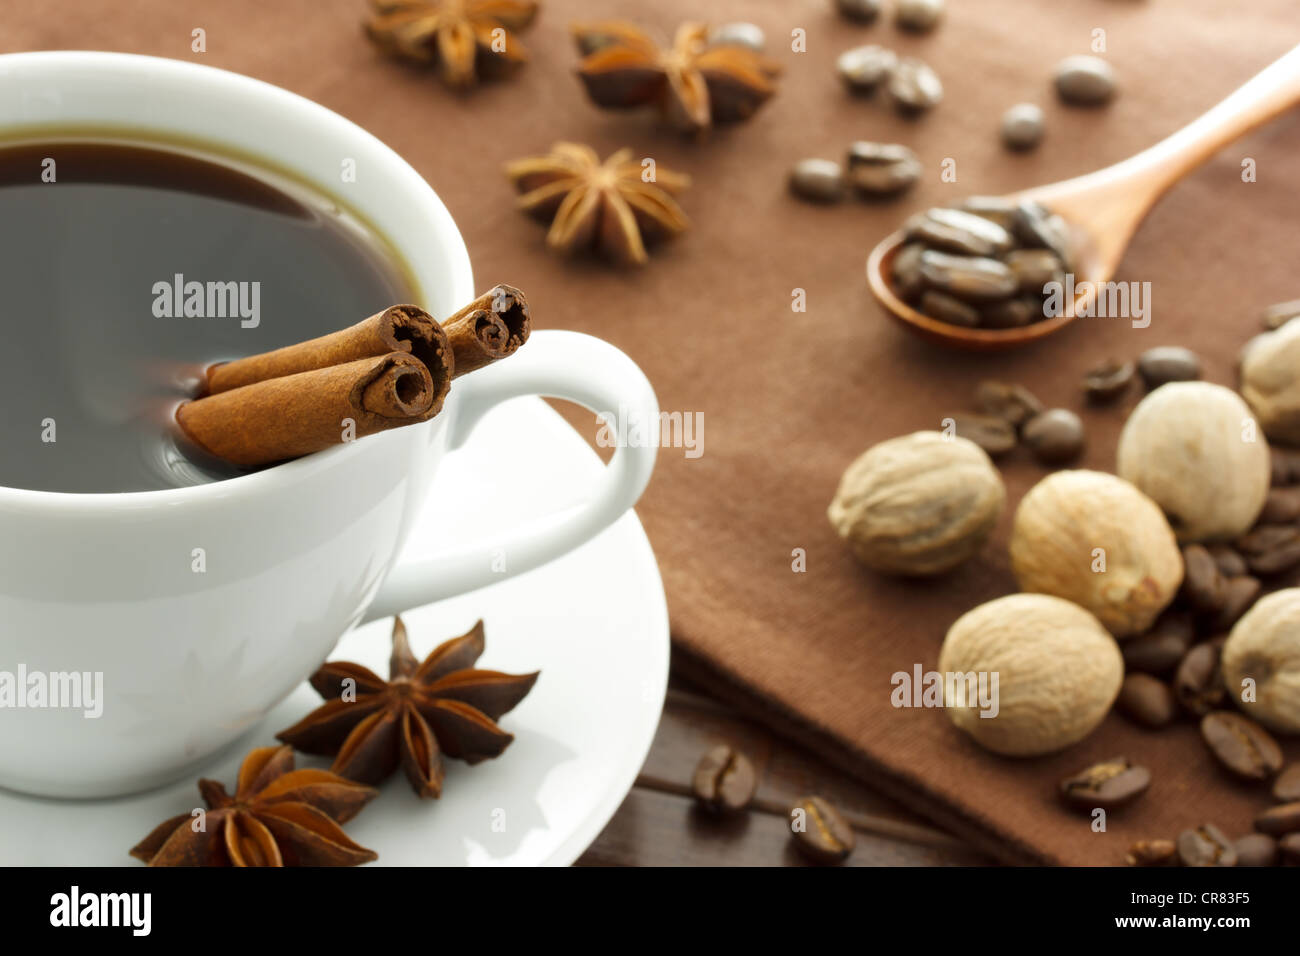 Hot Cup of Coffee with Spices - Cinnamon Star Anise and Nutmeg - Stock Image